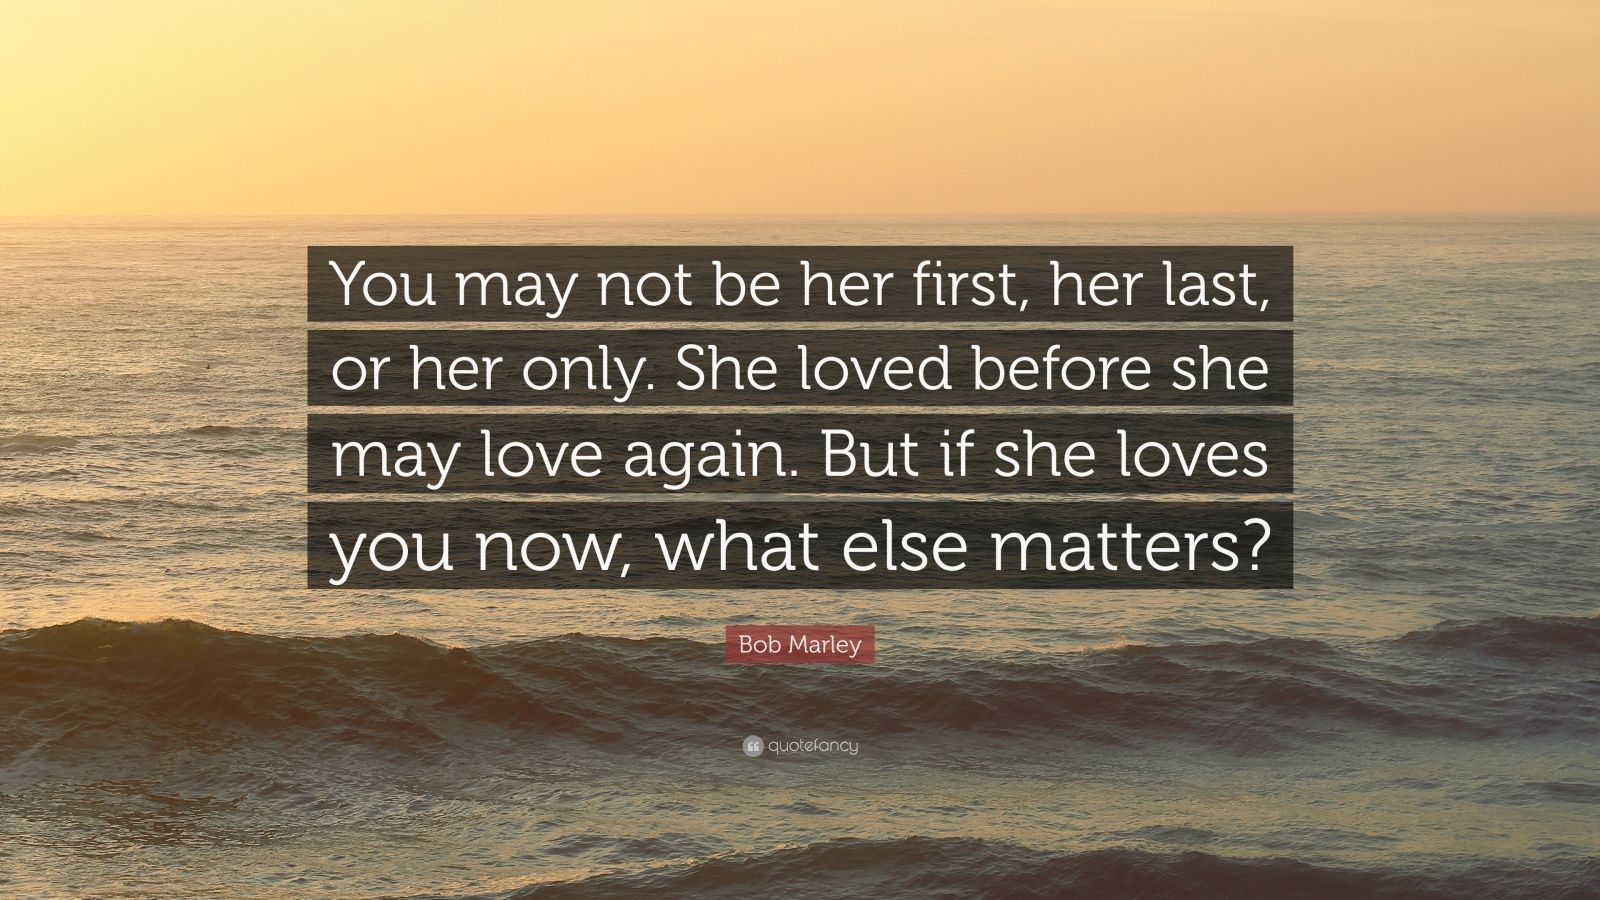 """Bob Marley Quote: """"You may not be her first, her last, or her only. She loved before she may love again. But if she loves you now, what else matters?"""""""